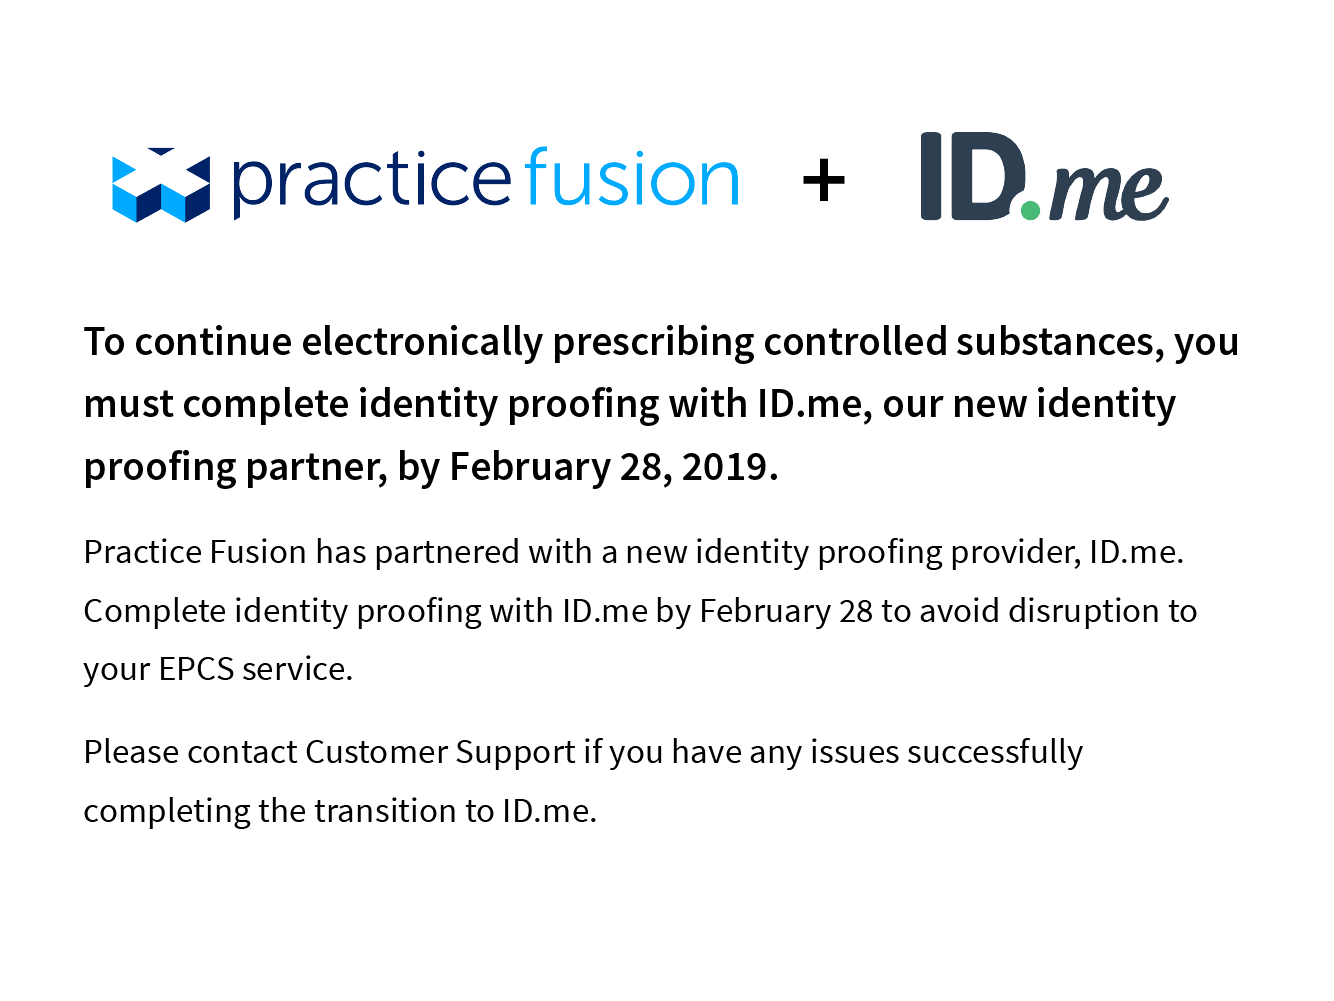 To continue electronically prescribing controlled substances, you must complete identity proofing with ID.me, our new identity proofing partner, by February 28,2019. Practice Fusion has partnered with a new identity proofing provider, ID.me. Compplete identity proofing with ID.me by February 28 to avoid disruption to your EPCS service. Please contact Customer Support if you have any issues successfully comnplete the transition to ID.me.